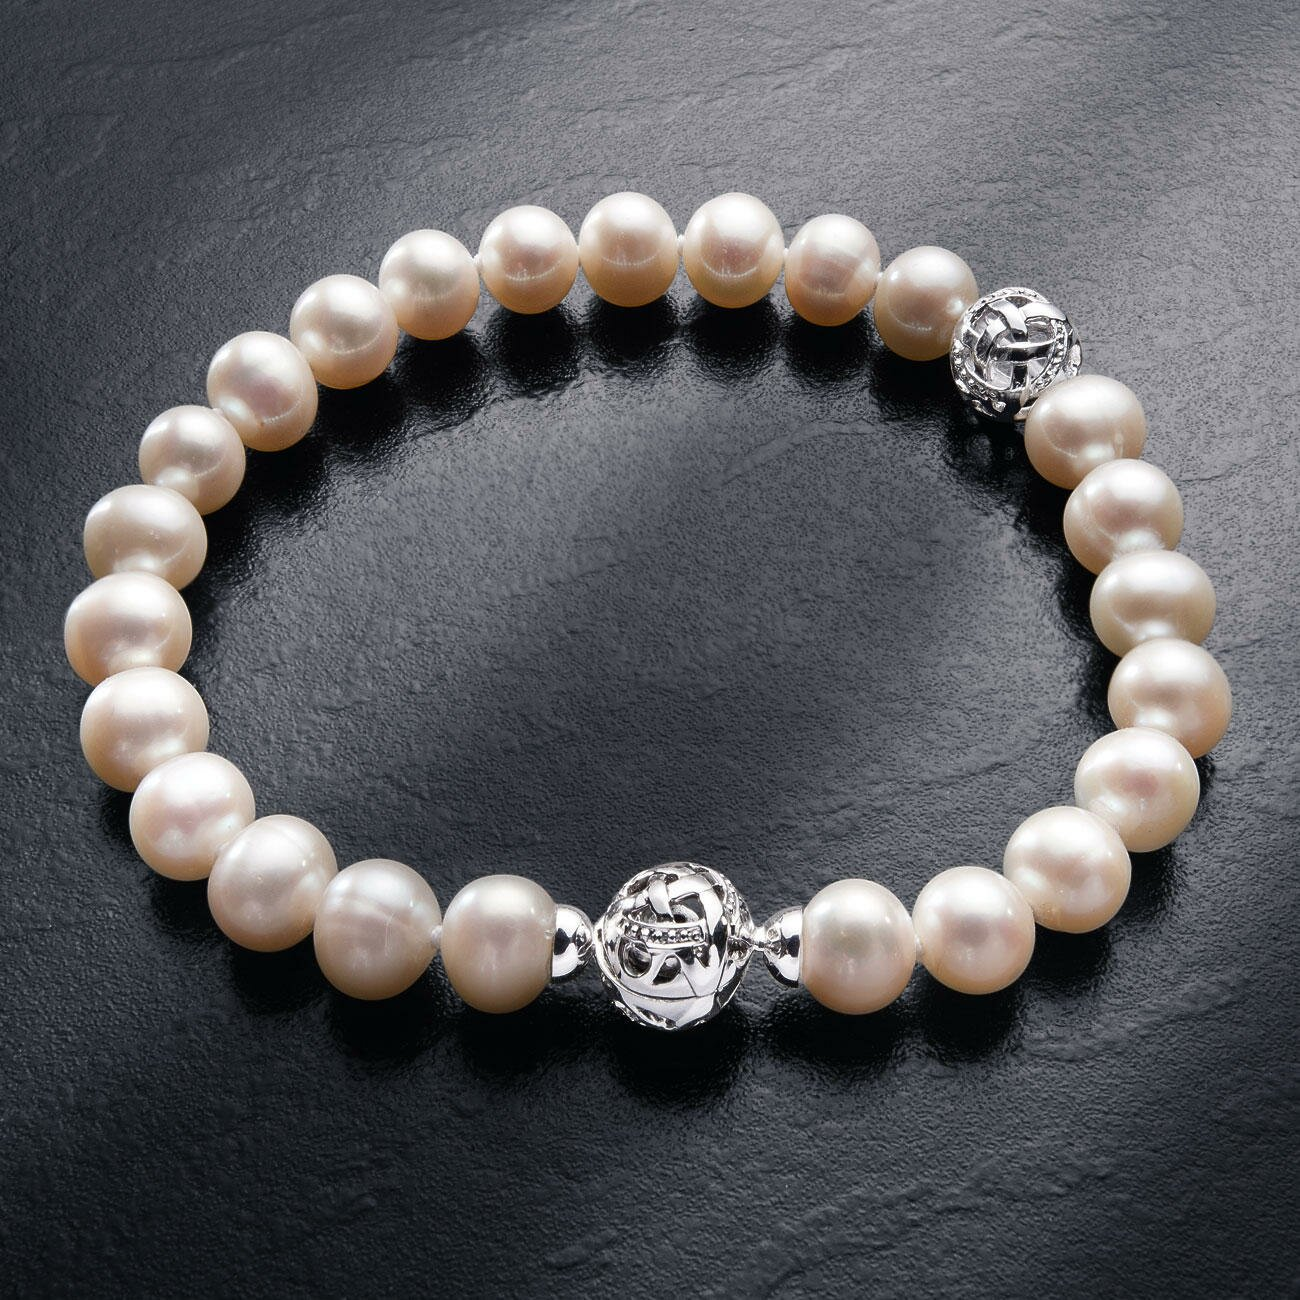 pearl bracelet design ideas - Bracelet Design Ideas